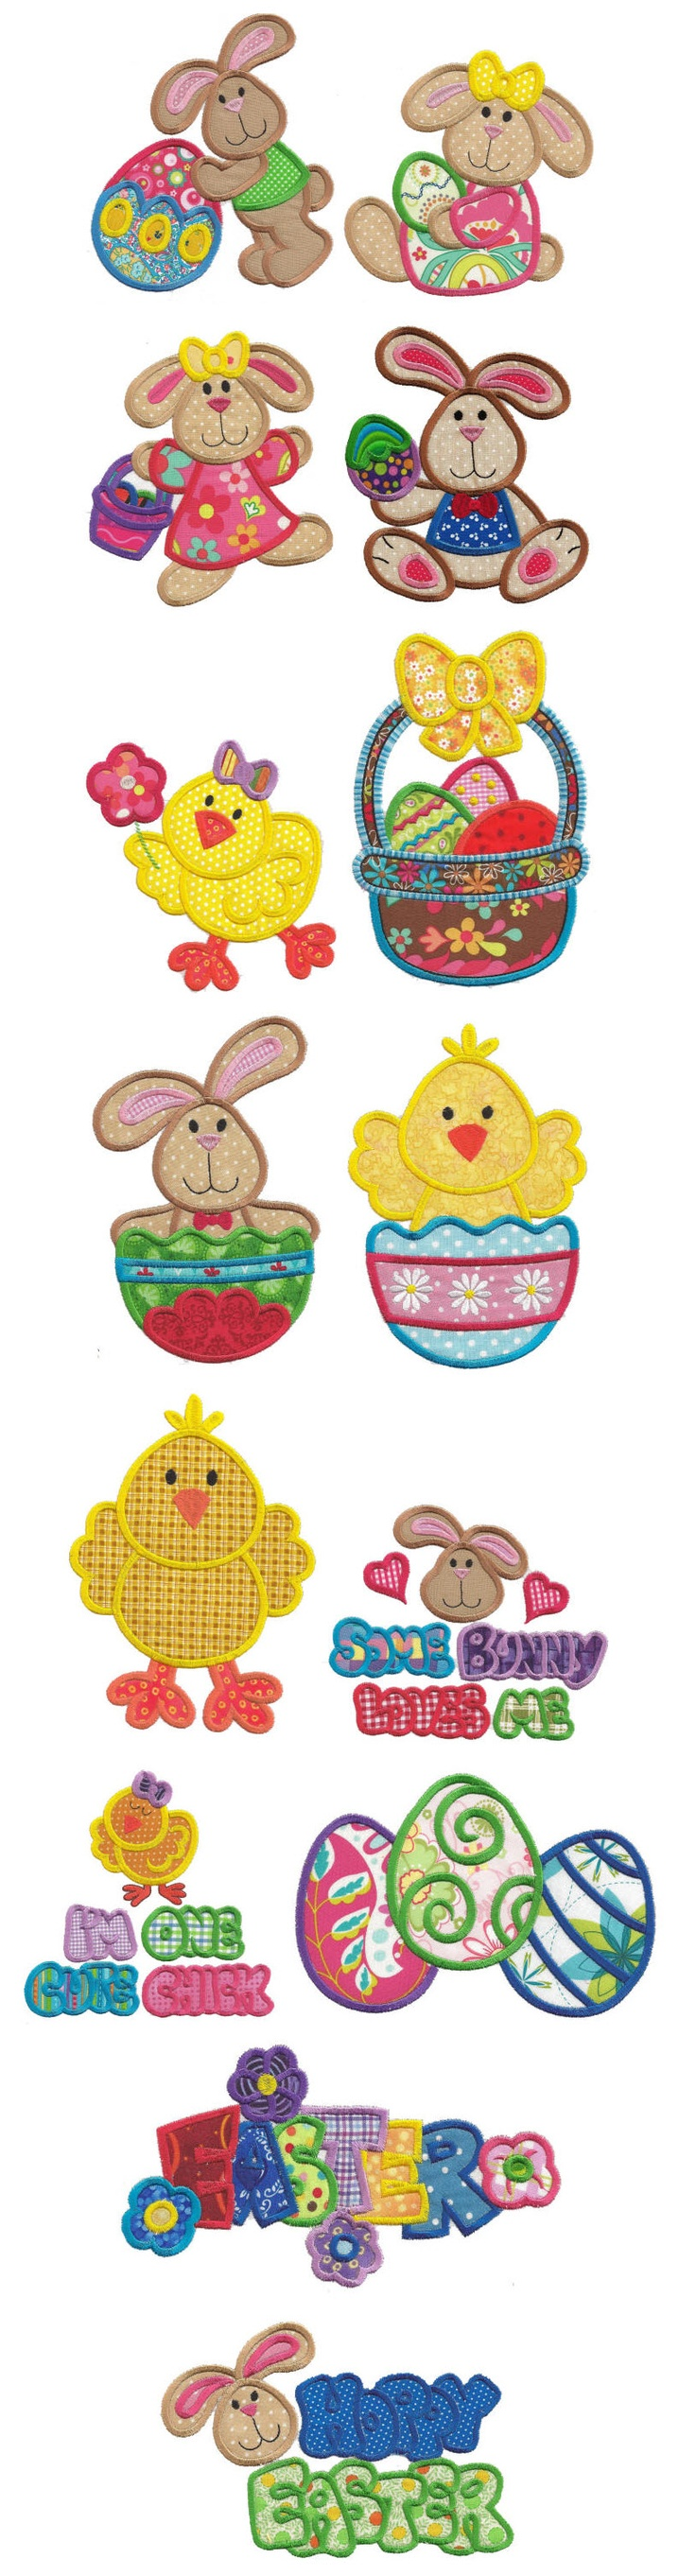 Embroidery | Free Maching Embroidery Designs | Jumbo Bunny Hop Applique